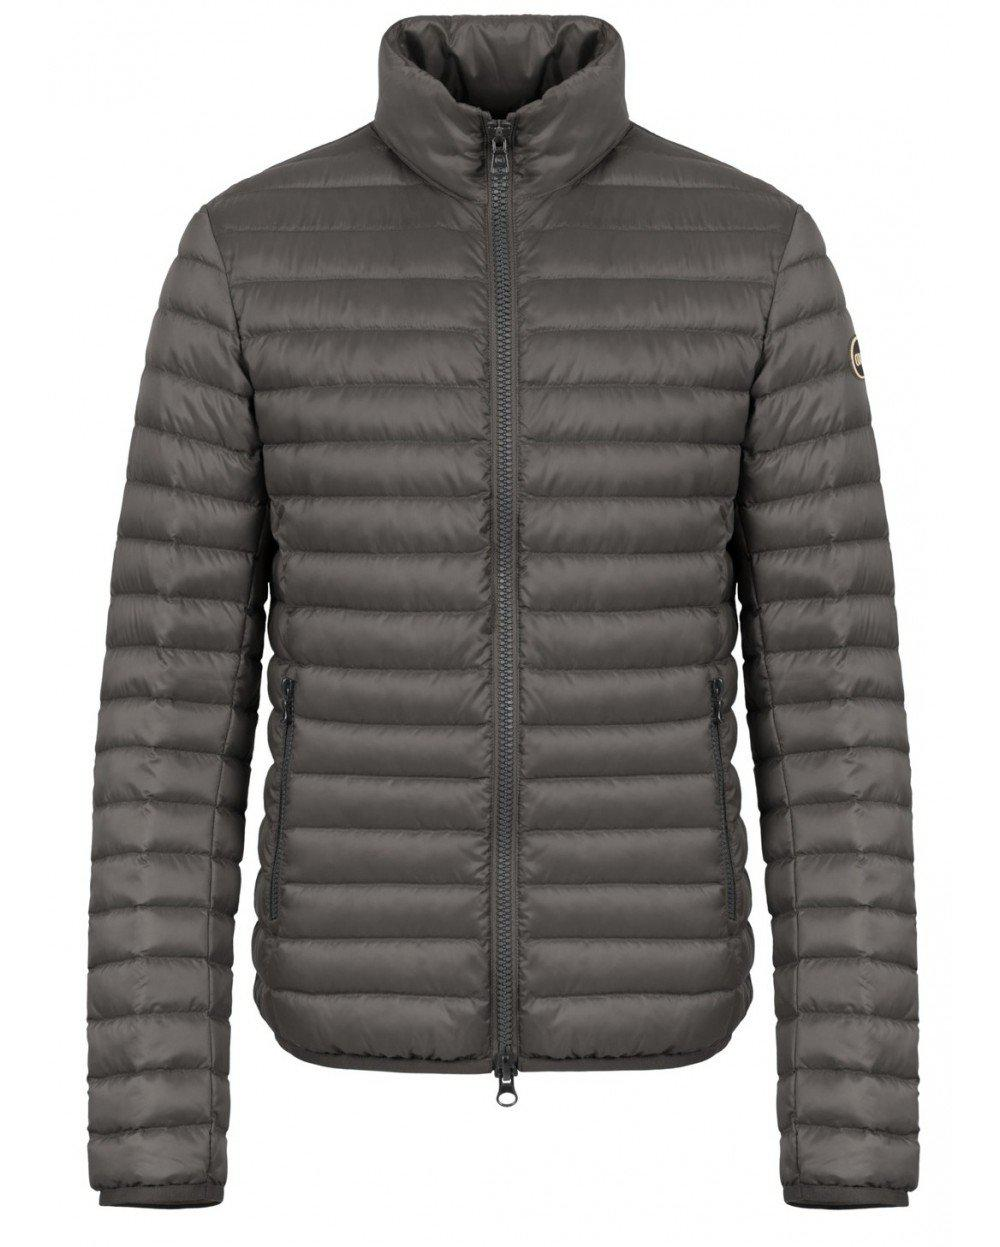 COLMAR Light Mens Down Jacket-Jackets-Colmar-s-Grey-Classic fashion CF13